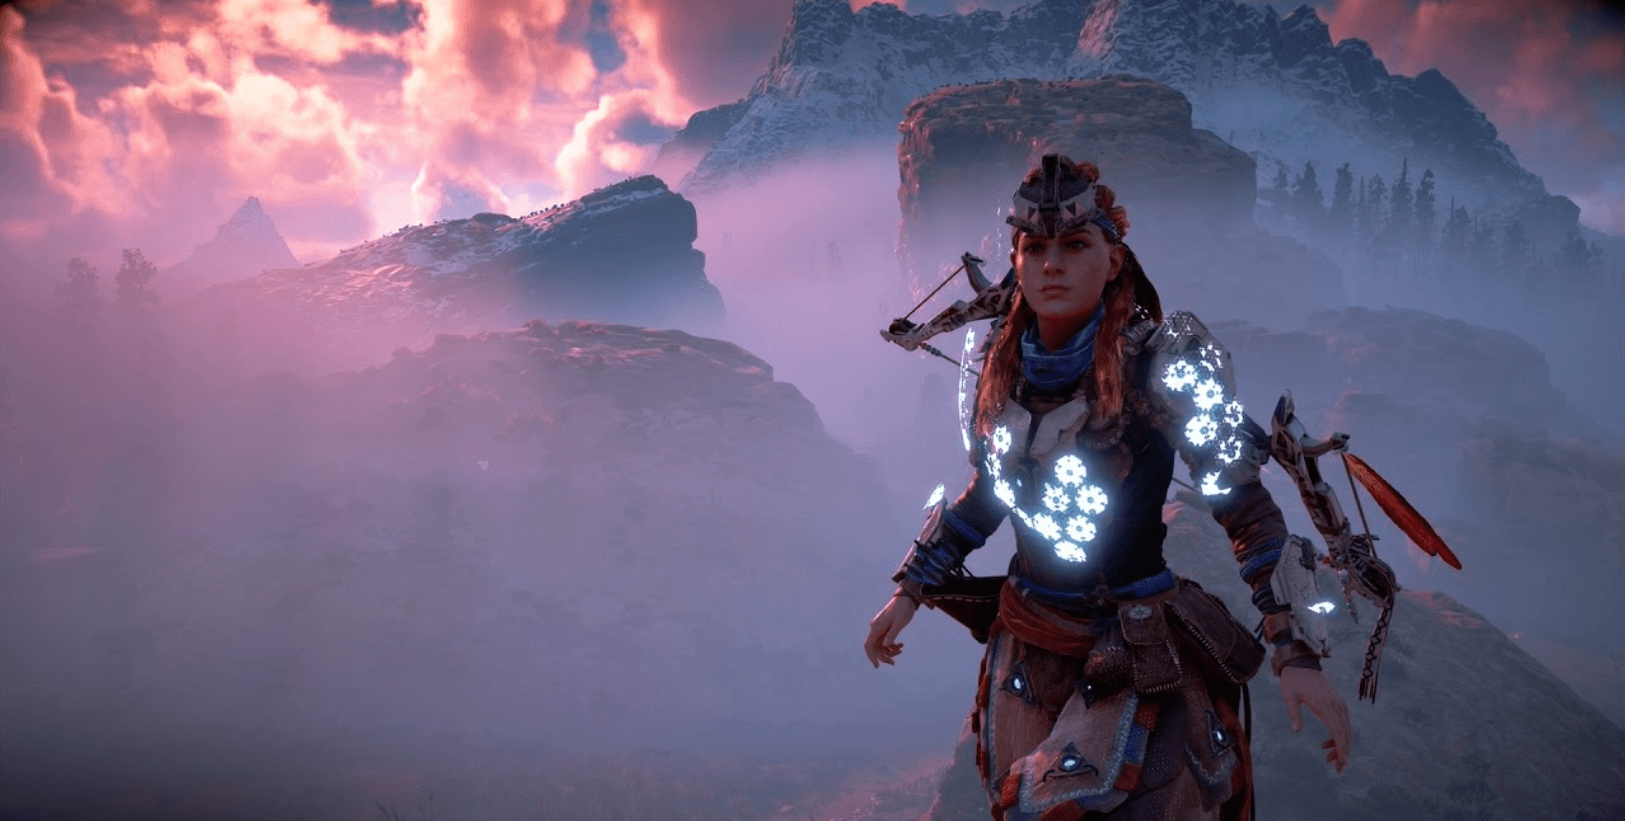 Sep 06,  · This page contains the walkthrough index for the main story quests in Horizon: Zero Dawn. This guide covers everything you need to know about the main story in Horizon: Zero Dawn..